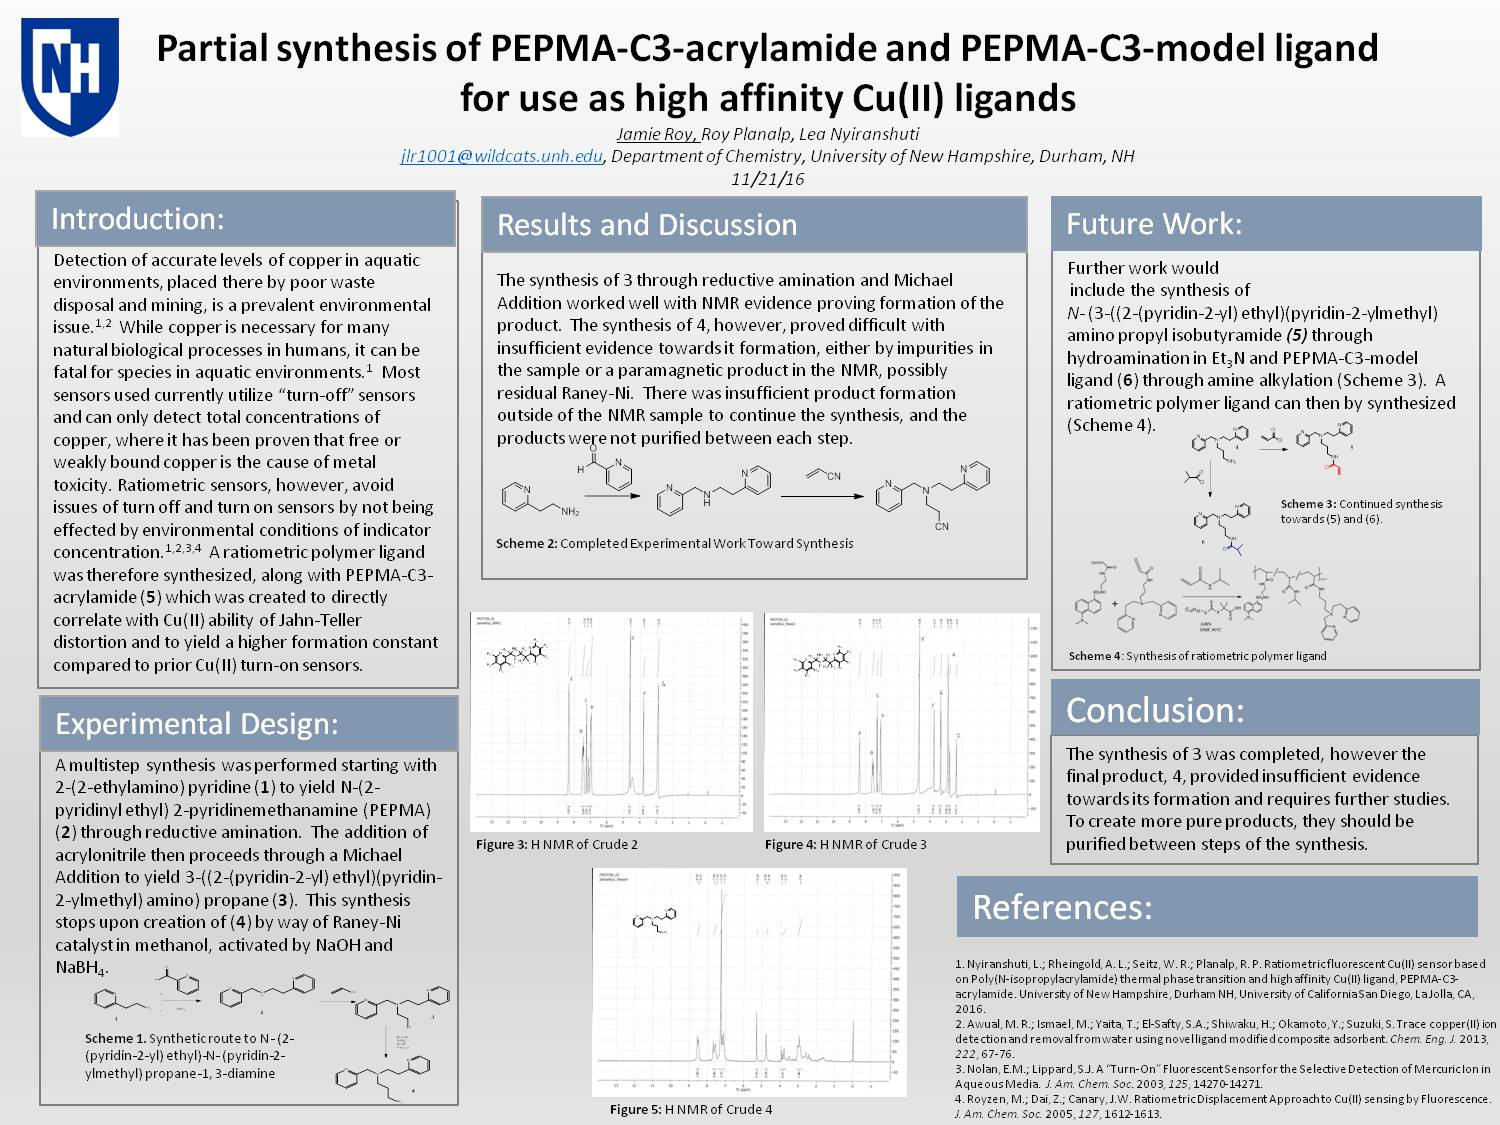 Partial Synthesis Of Pepma-C3-Acrylamide And Pepma-C3-Model Ligand For Use As High Affinity Cu(Ii) Ligands  by jlr1001